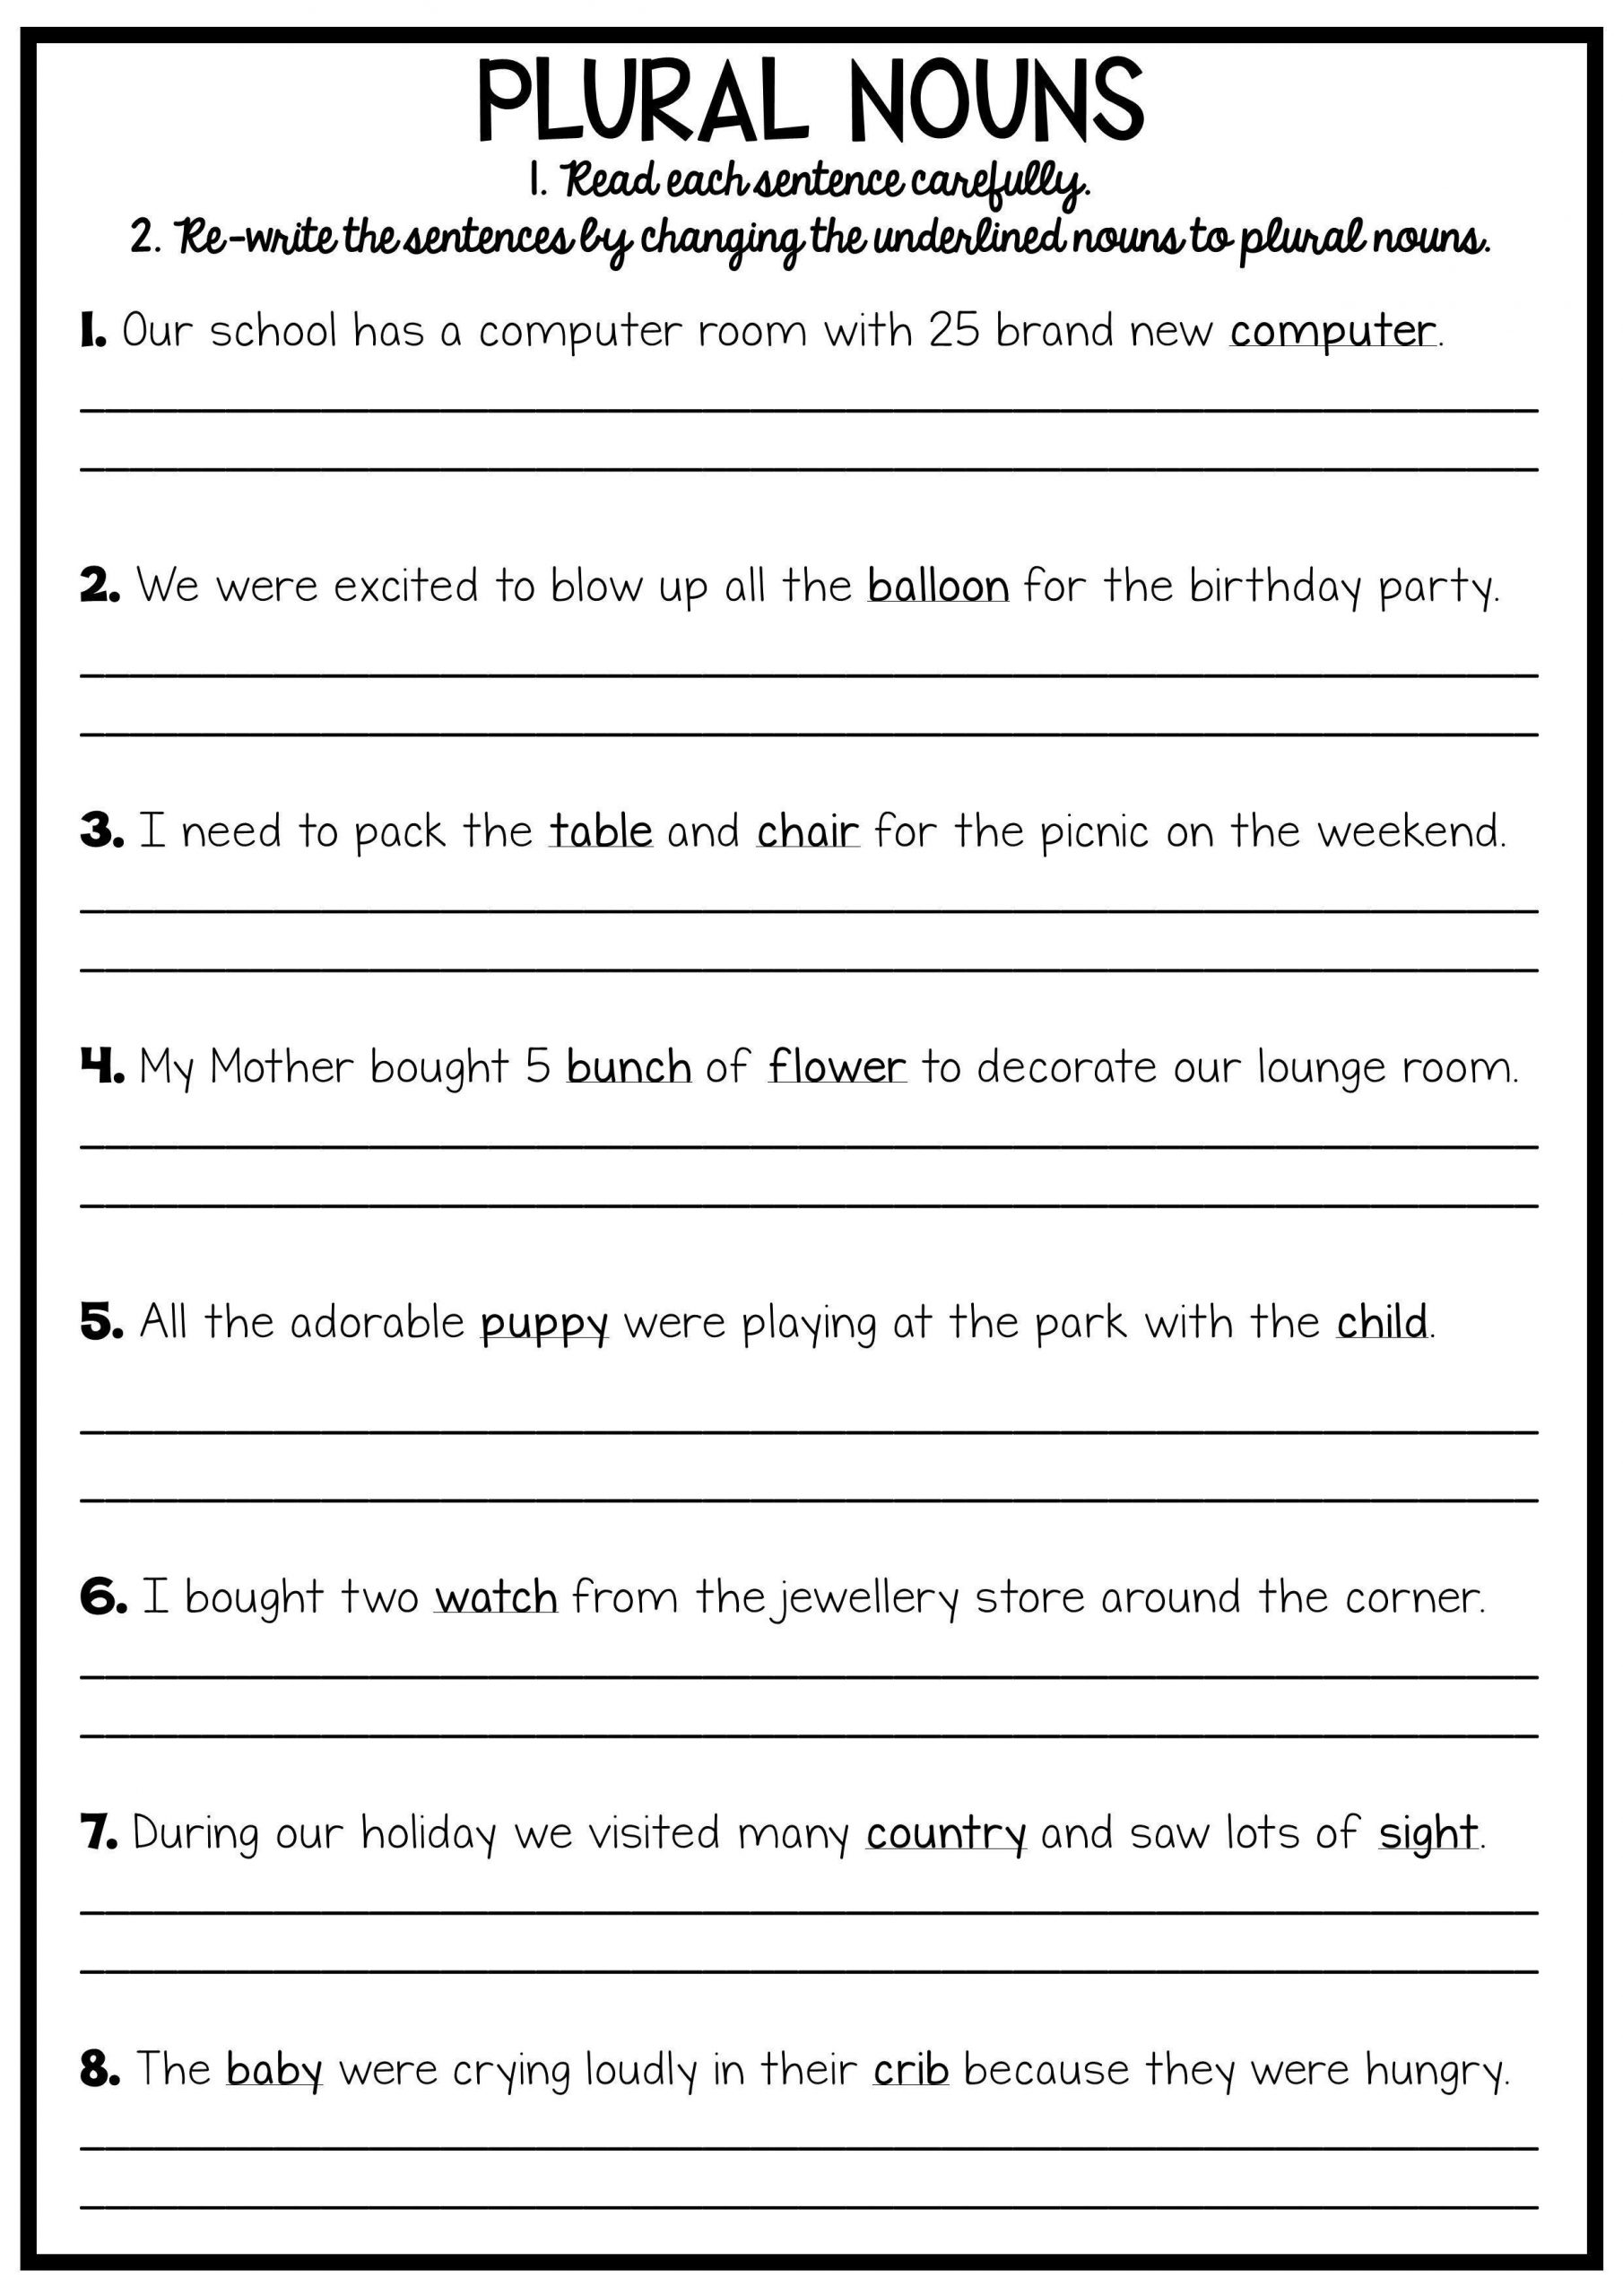 Plurals Worksheet 3rd Grade Writing Worksheets for 3rd Grade